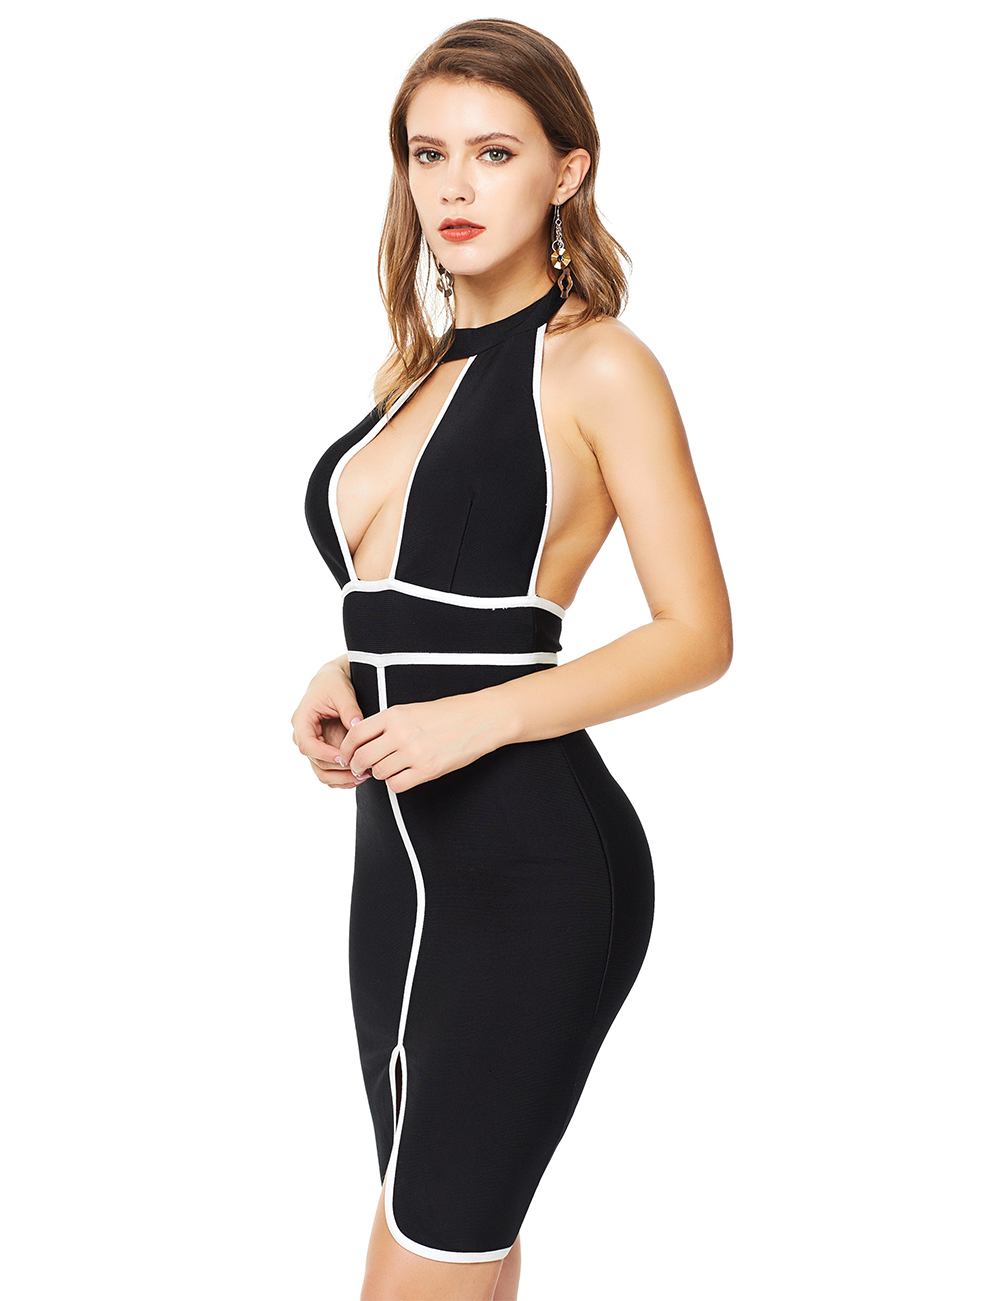 //cdn.affectcloud.com/feelingirldress/upload/imgs/2019-06-10/VZ190556-BK1/VZ190556-BK1-3.jpg